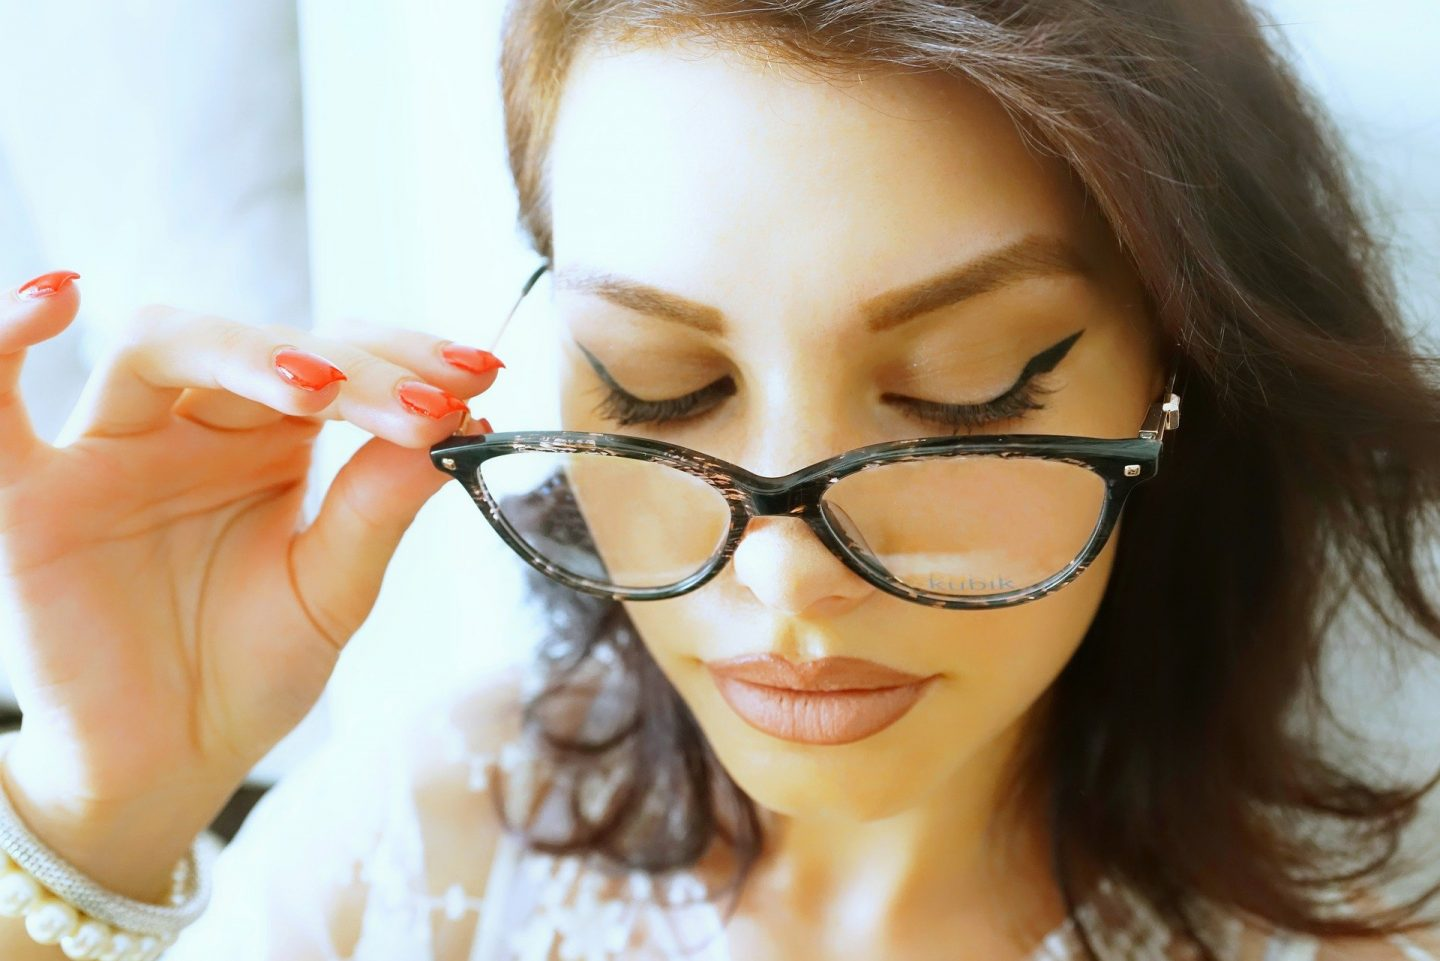 HOW TO CHOOSE THE RIGHT GLASSES FOR YOUR FACE SHAPE